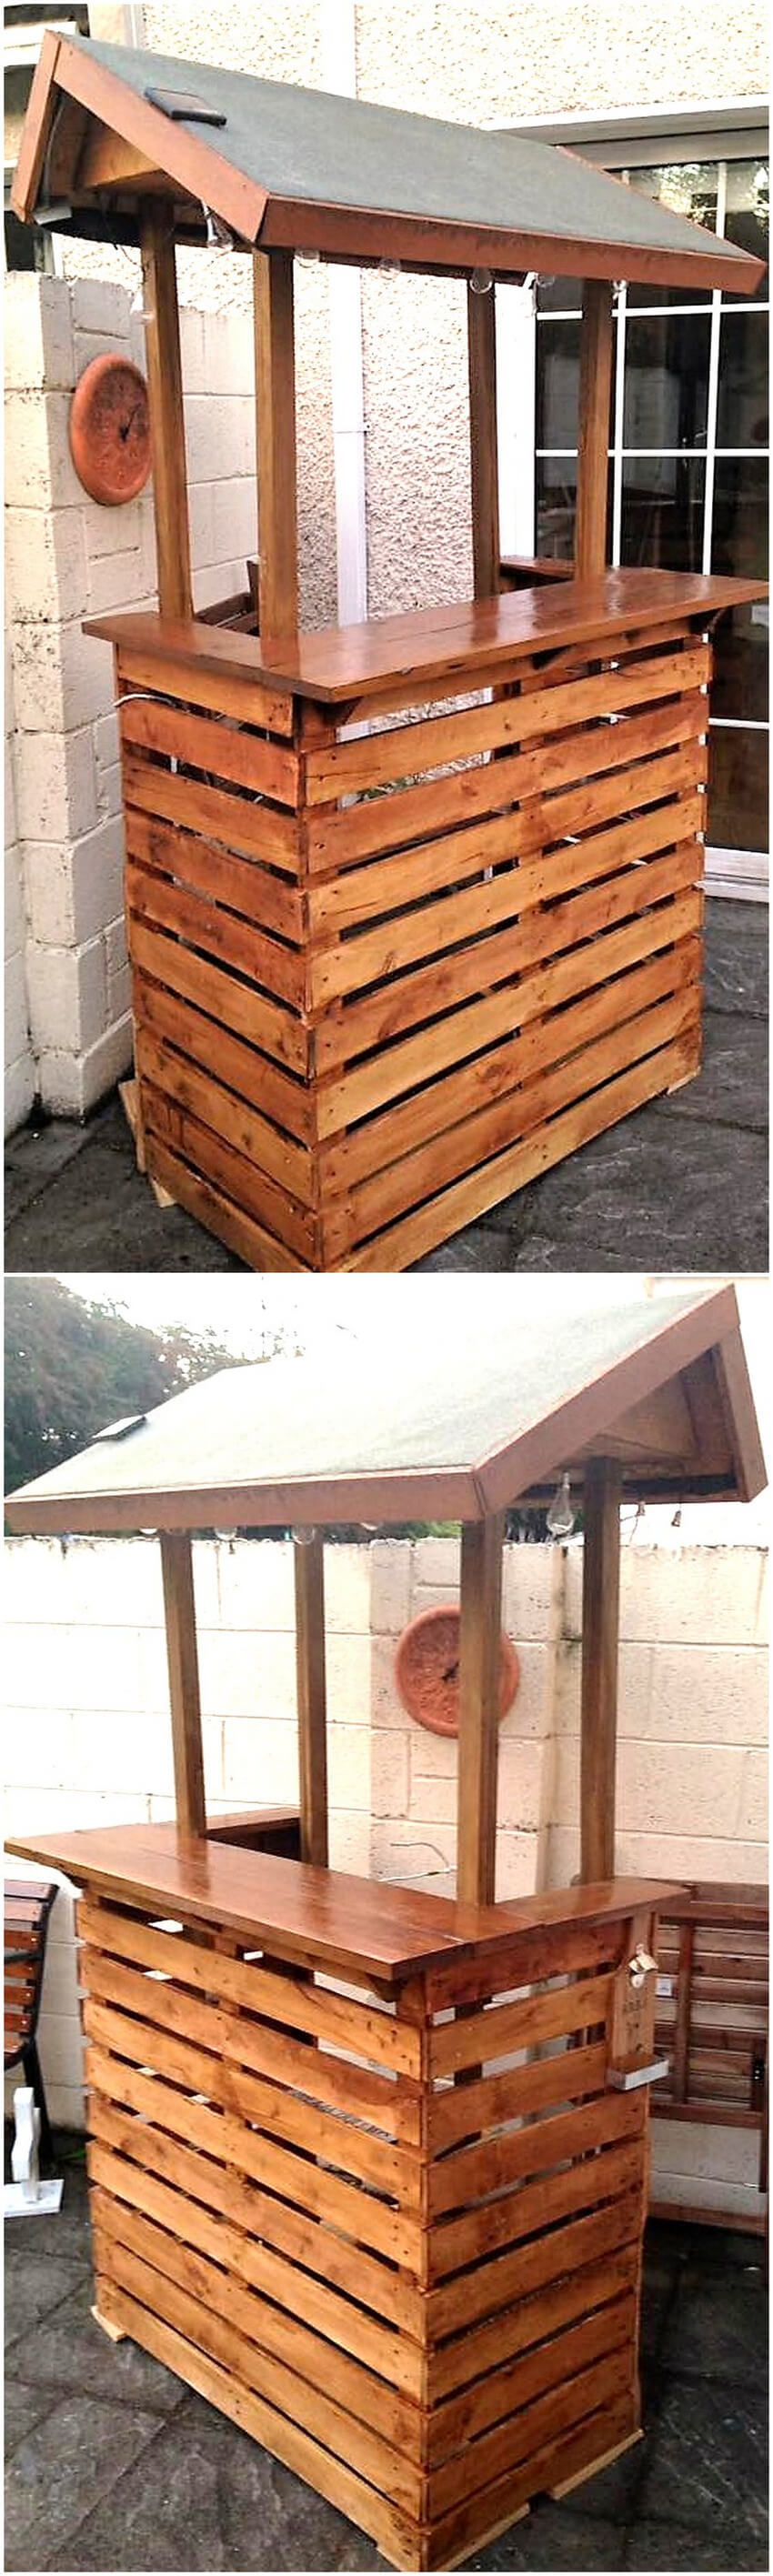 reused pallets bar